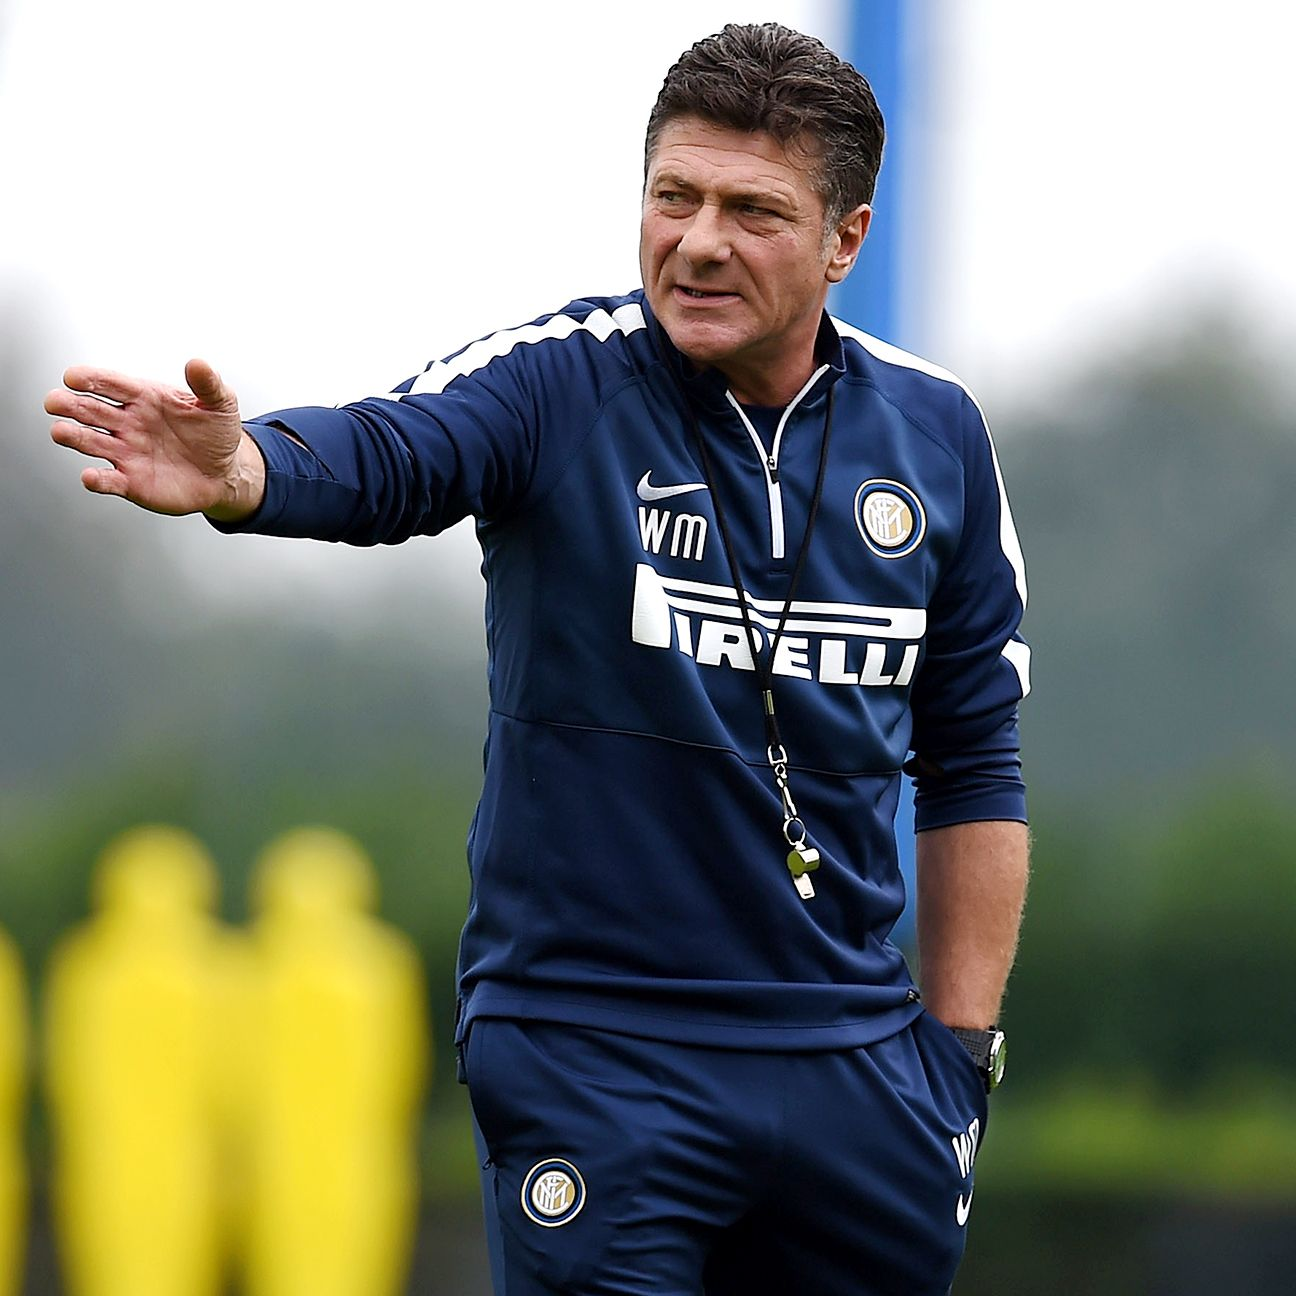 Should the poor results continue at Inter, manager Walter Mazzarri may be pointing himself to the exit doors.